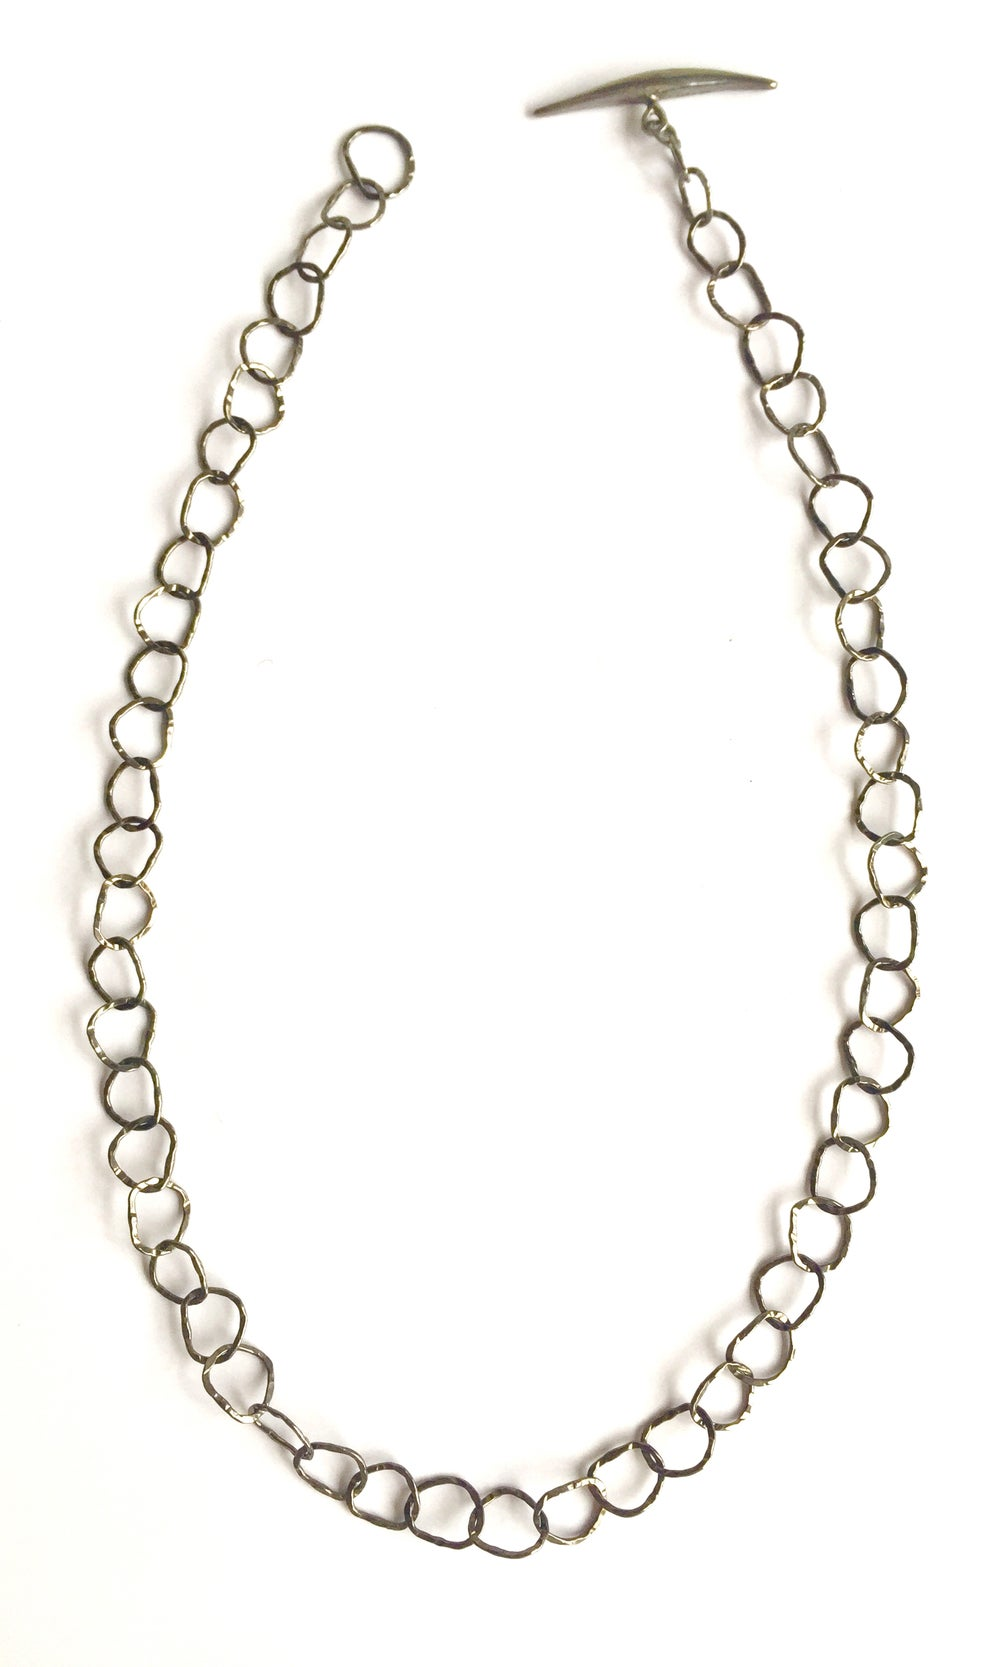 Image of Afiok necklace single length Black rhodium